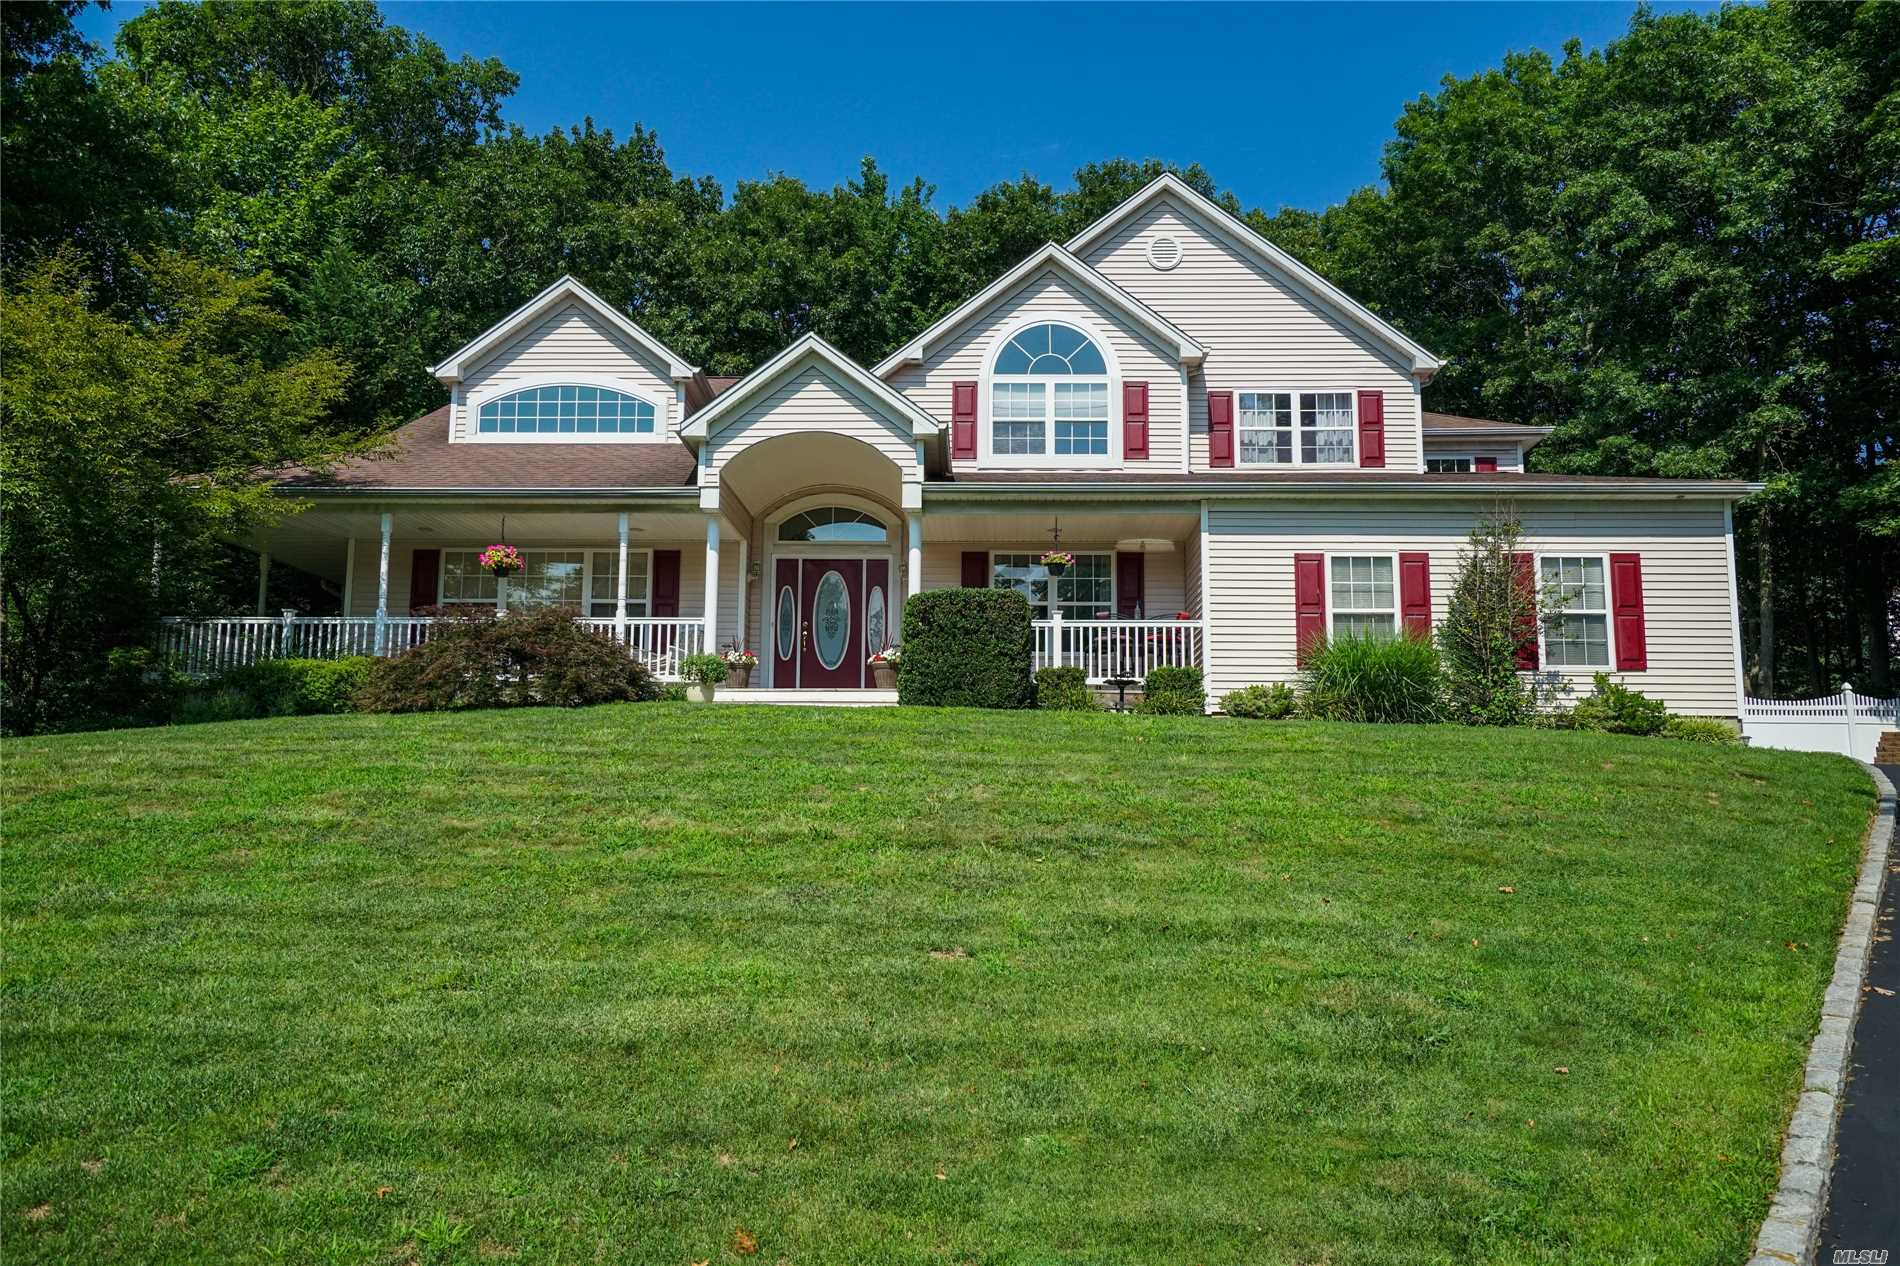 Desirable Cul De Sac Location In This Move-In Ready Post-Modern Colonial. Two Master Bedroom Suites In Addition To Two Other Large Bedrooms. Hardwood Floors, Central Vacuum And Air. Two Fireplaces. Large Eik With Family Room. Basement Has Large Recreation Room, Work Room And Office Area. Entertainers Backyard Including Hot Tub And Custom Built Playhouse. Comsewogue Schools.